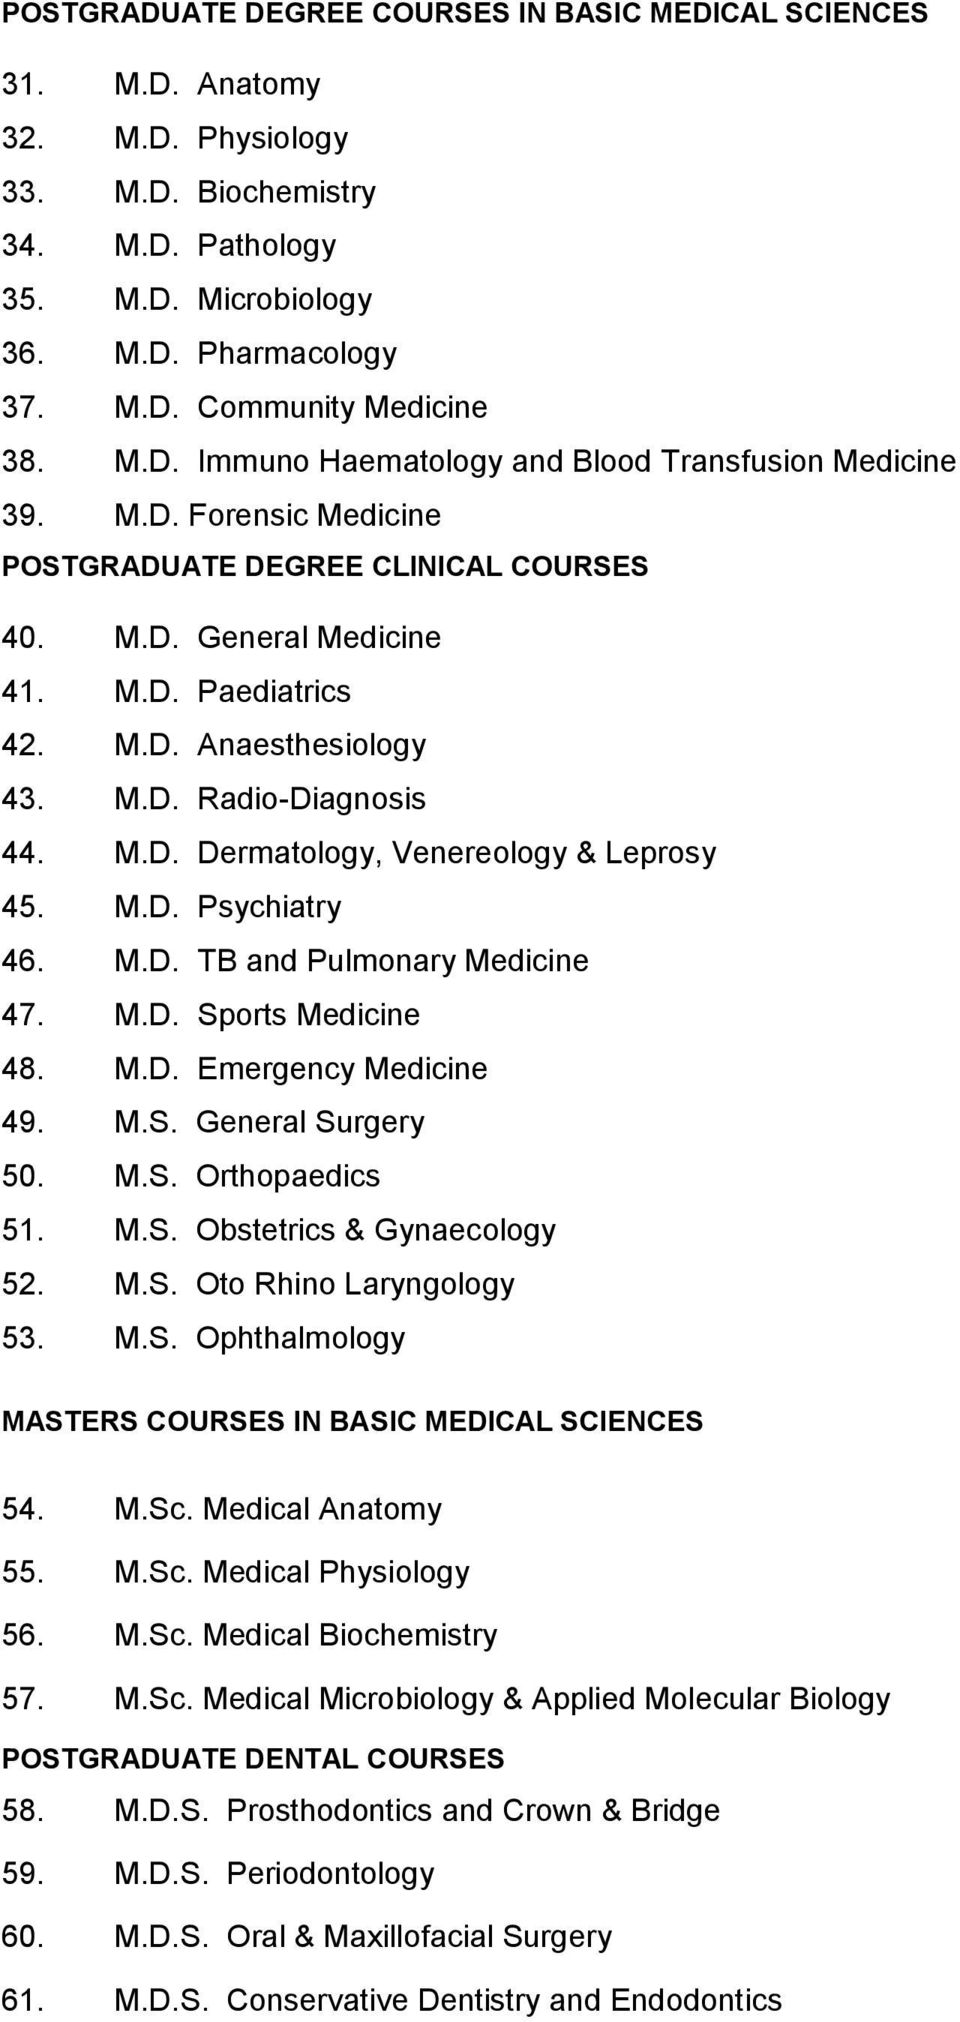 M.D. Dermatology, Venereology & Leprosy 45. M.D. Psychiatry 46. M.D. TB and Pulmonary Medicine 47. M.D. Sports Medicine 48. M.D. Emergency Medicine 49. M.S. General Surgery 50. M.S. Orthopaedics 51.